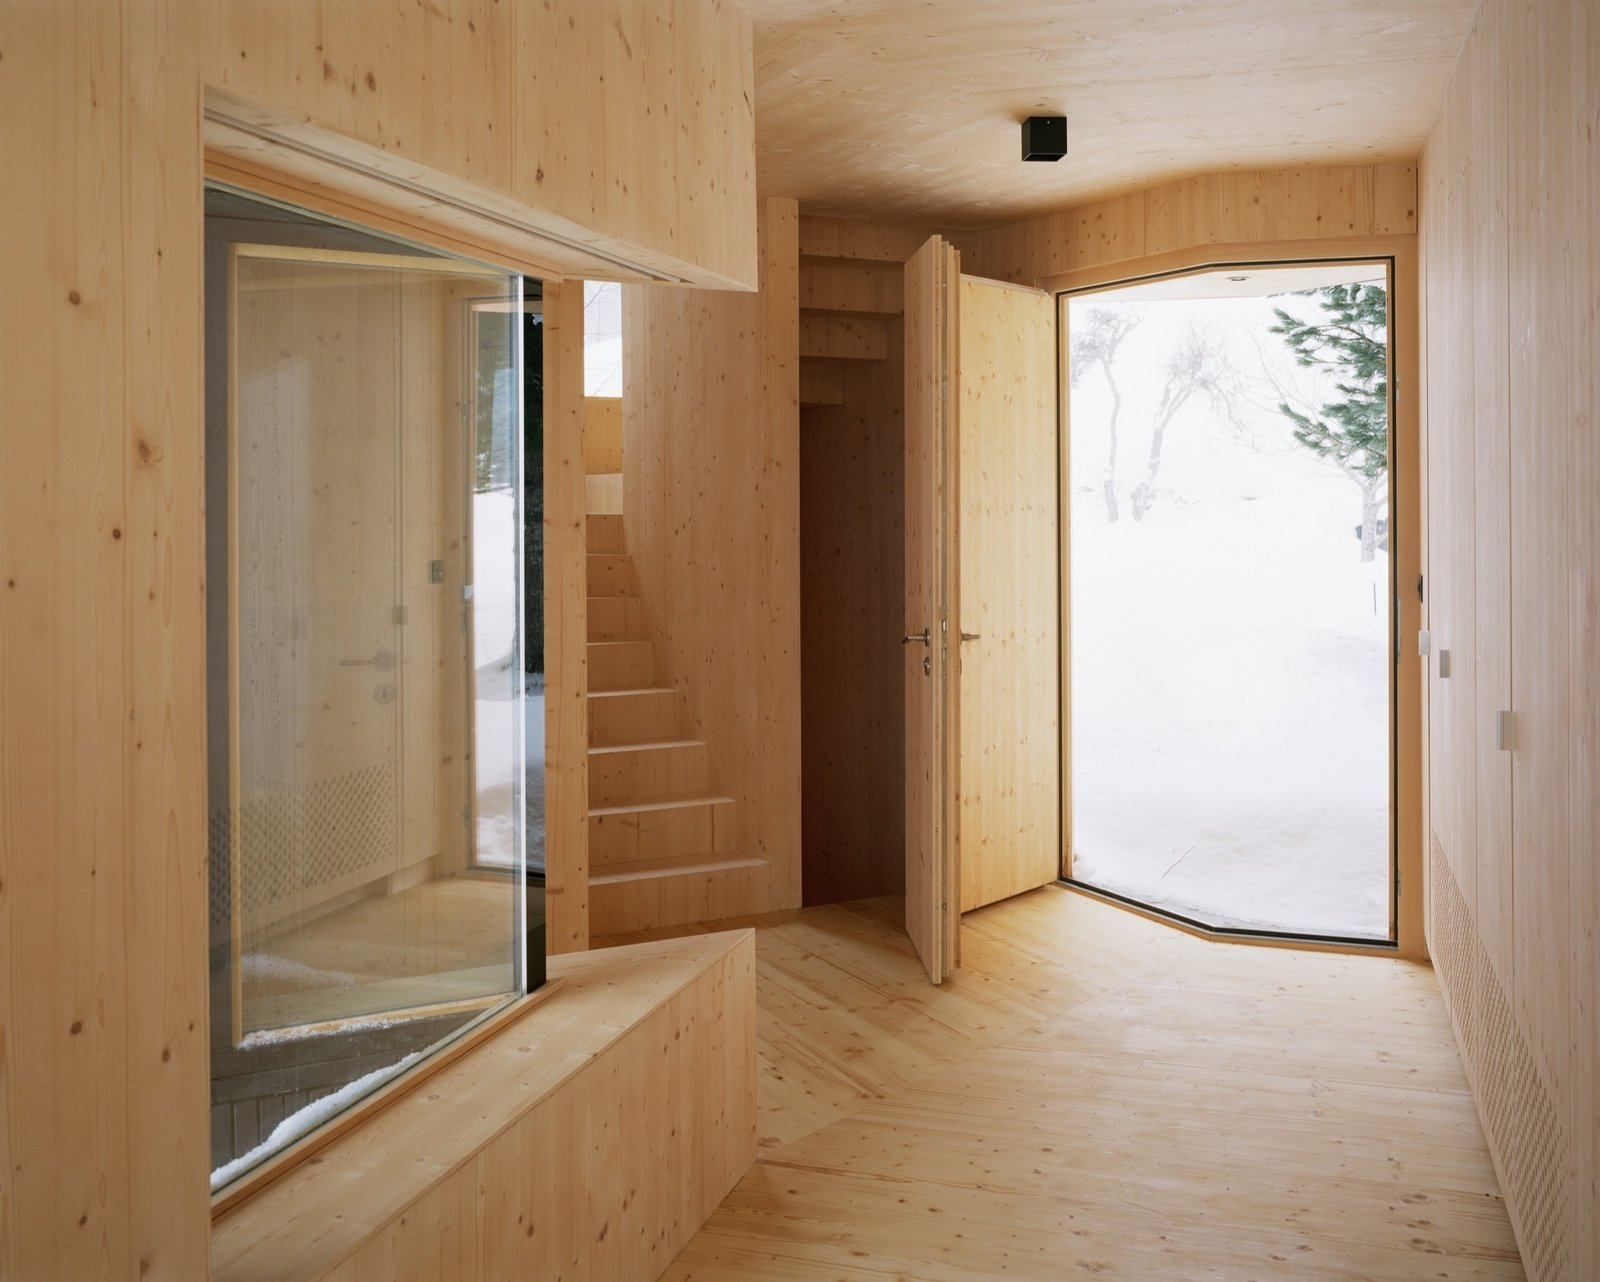 The entryway folds where the two wings meet, creating a V-shaped front door and window.